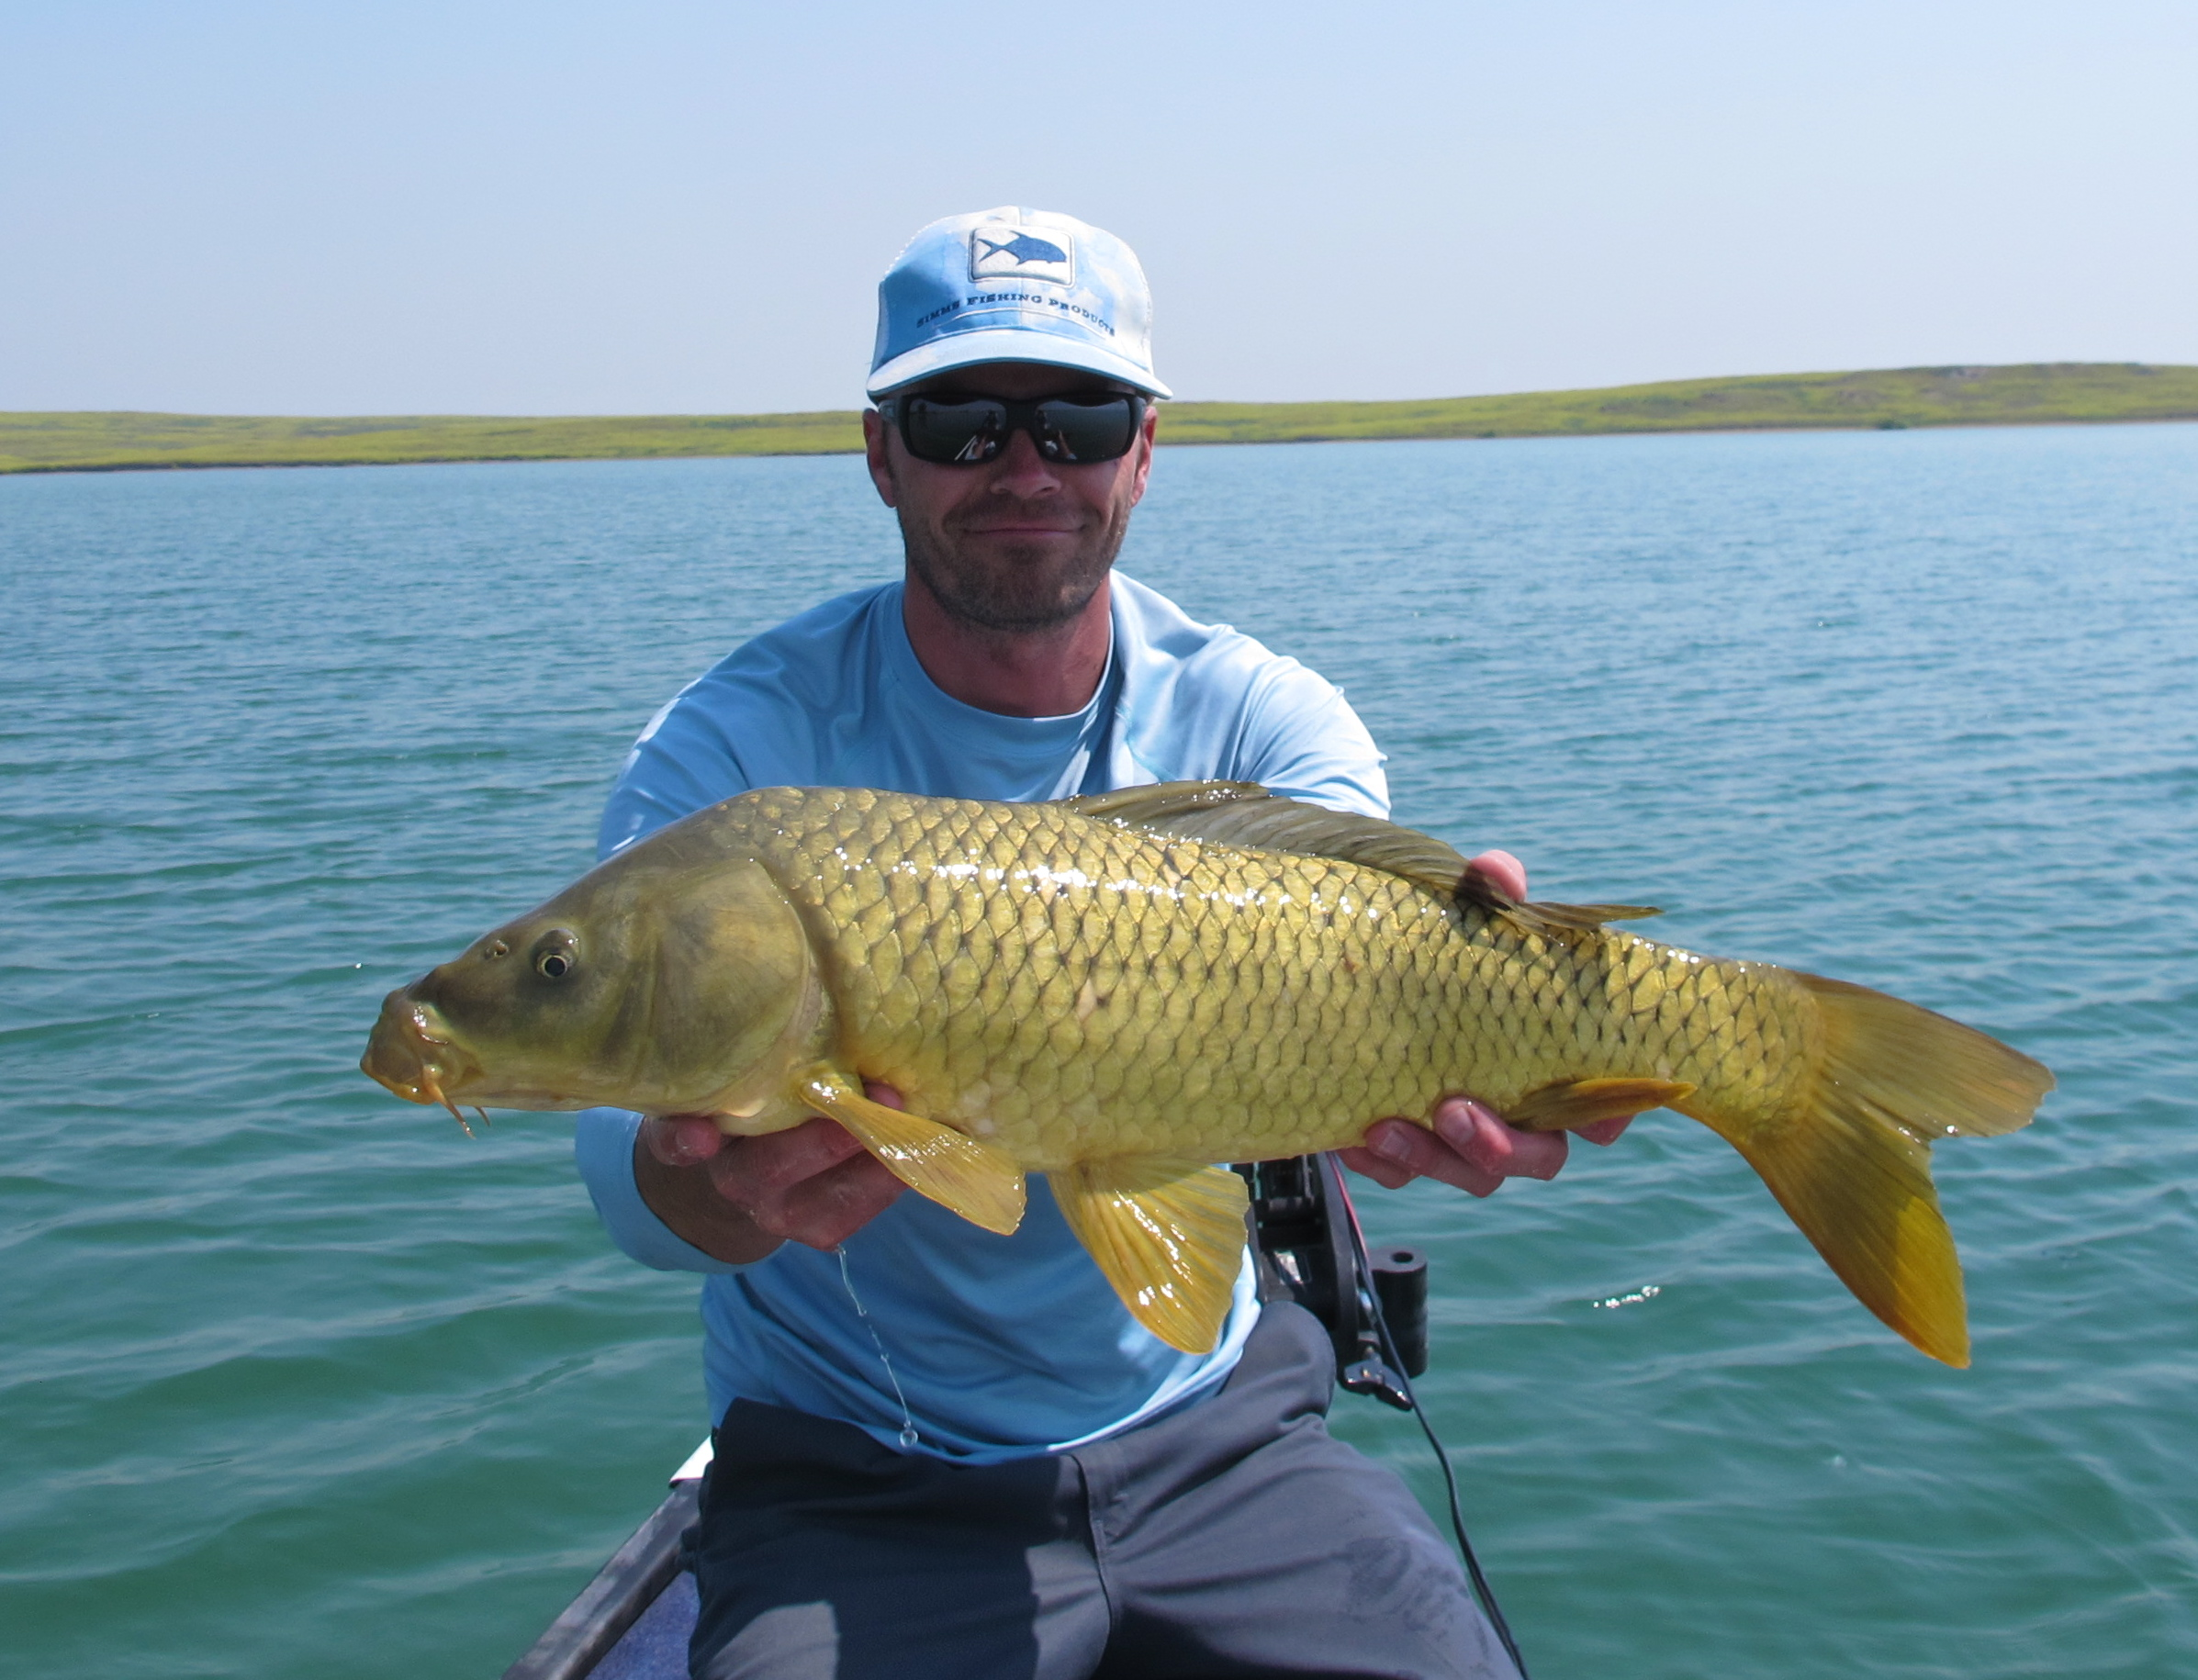 Black hills fishing report july 21st 2014 dakota angler for Dakota angler fishing reports